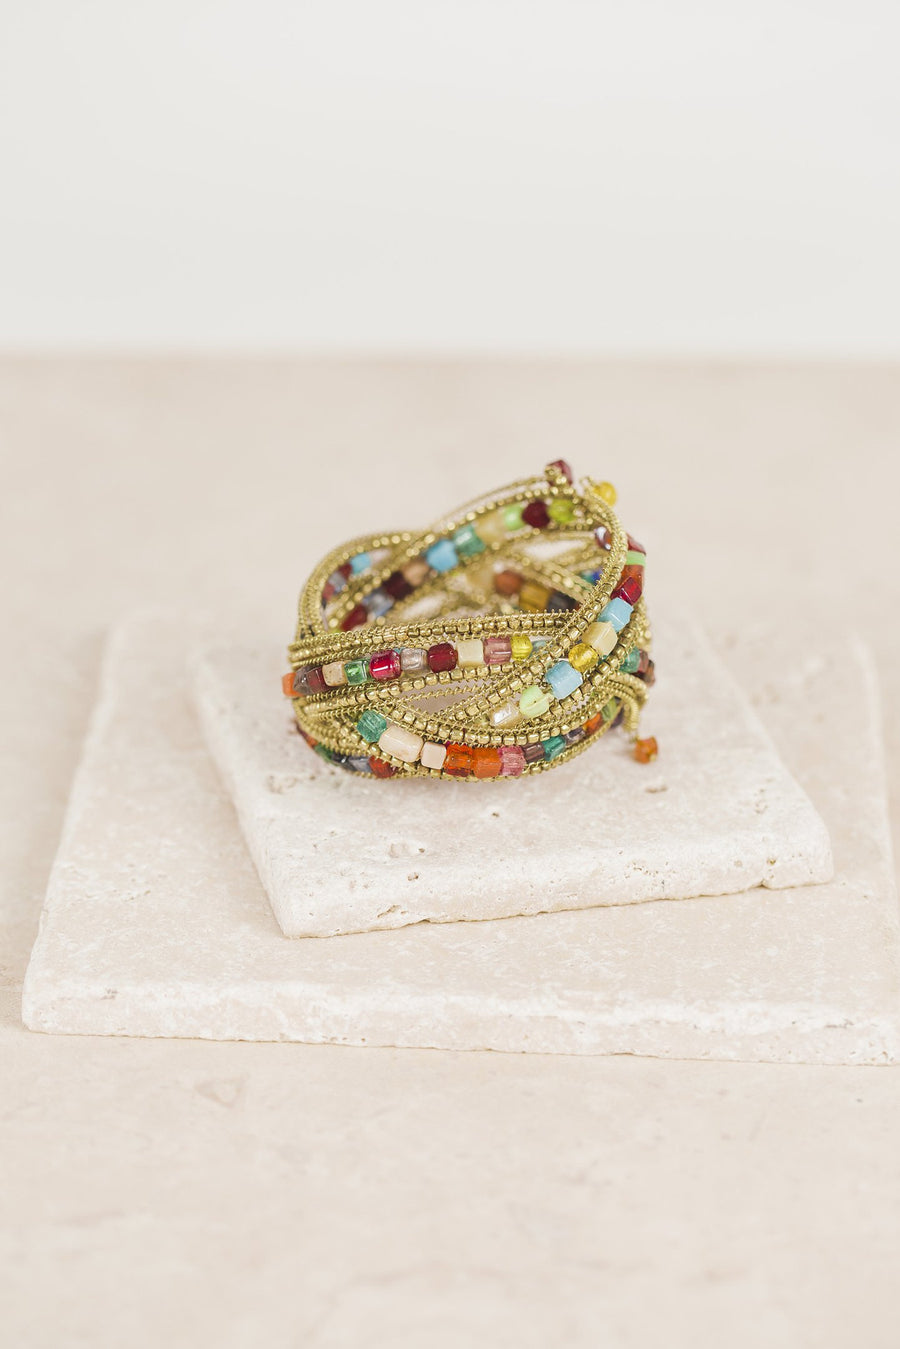 Handmade Gold Multi-color, Multi-layer Beaded Bracelet